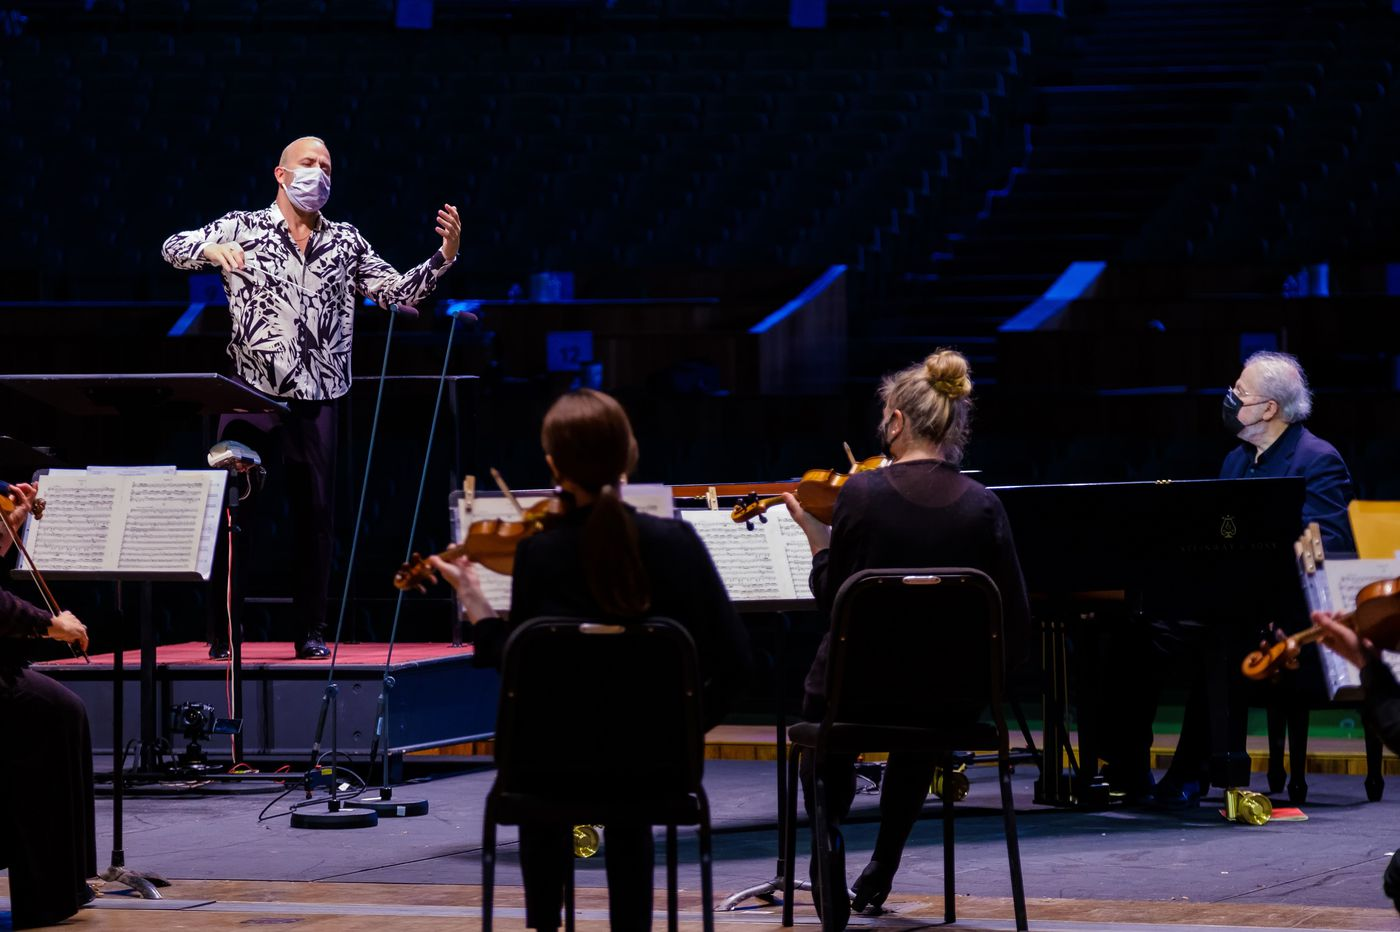 The Philadelphia Orchestra again unlocks something meaningful in its digital season, this time with Emanuel Ax